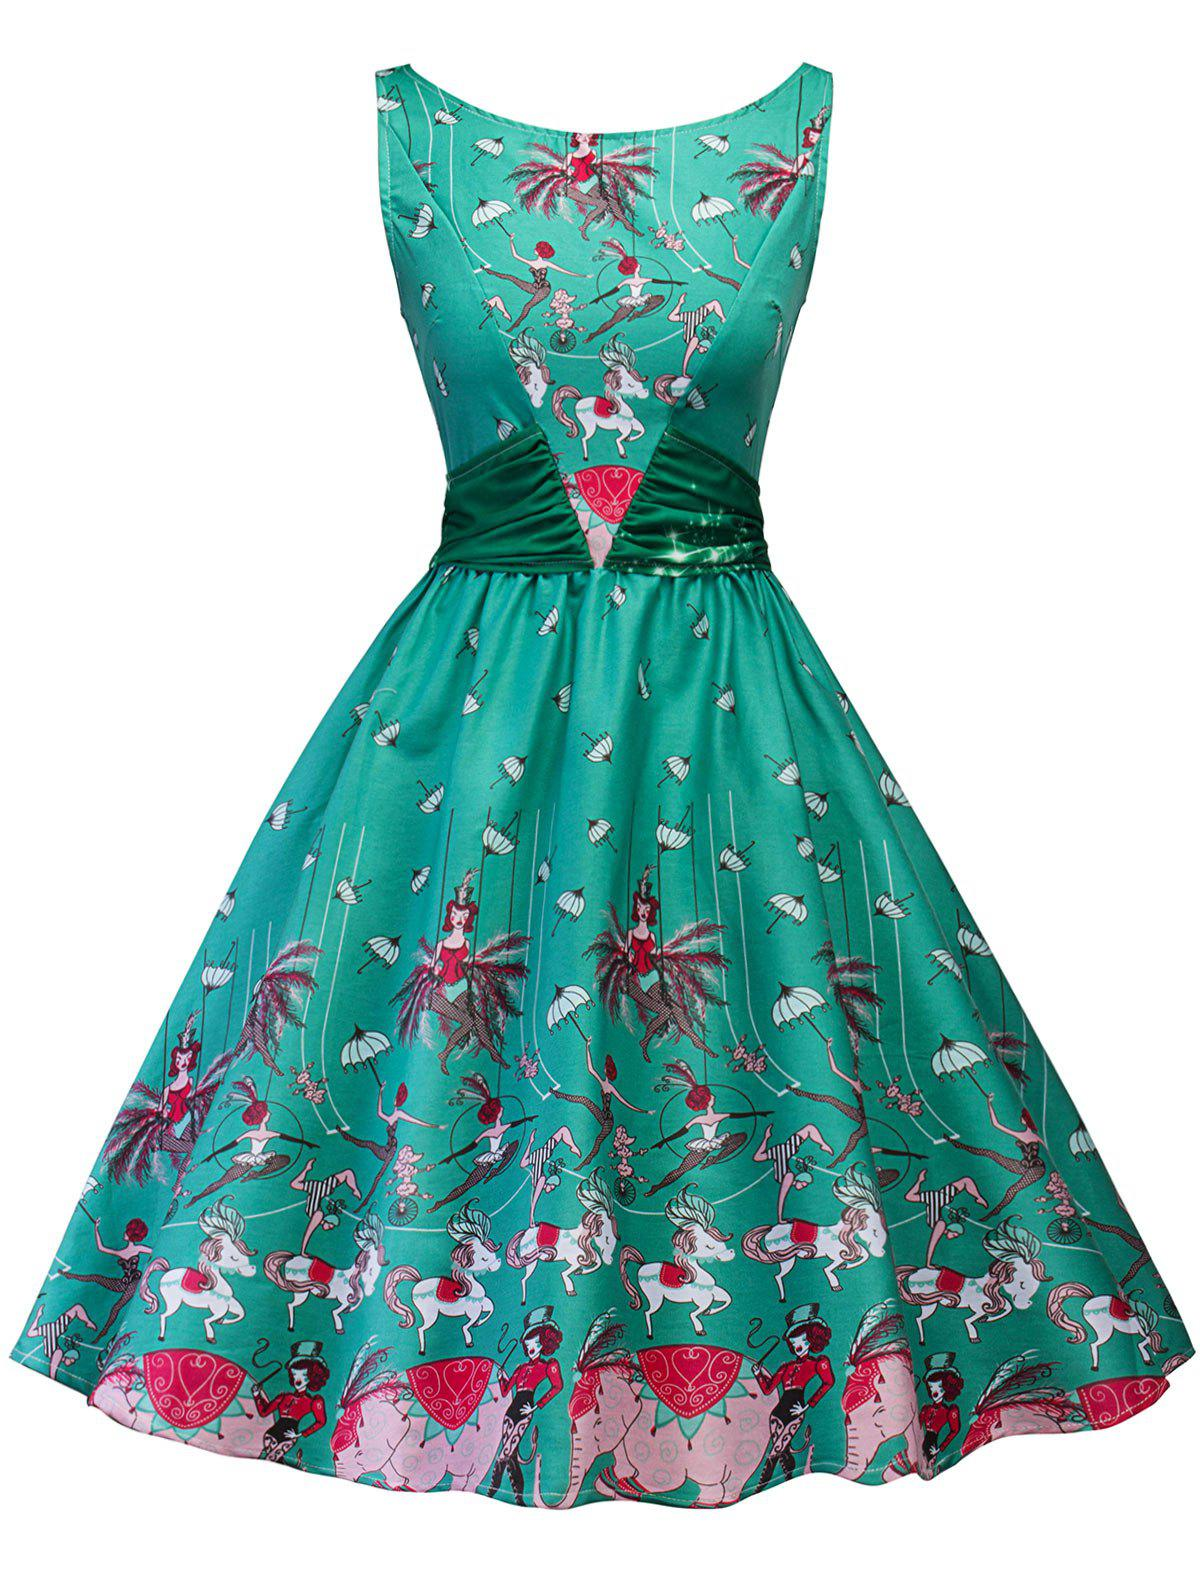 Retro Printed Ruched Skater Dress retro butterfly pattern skater dress